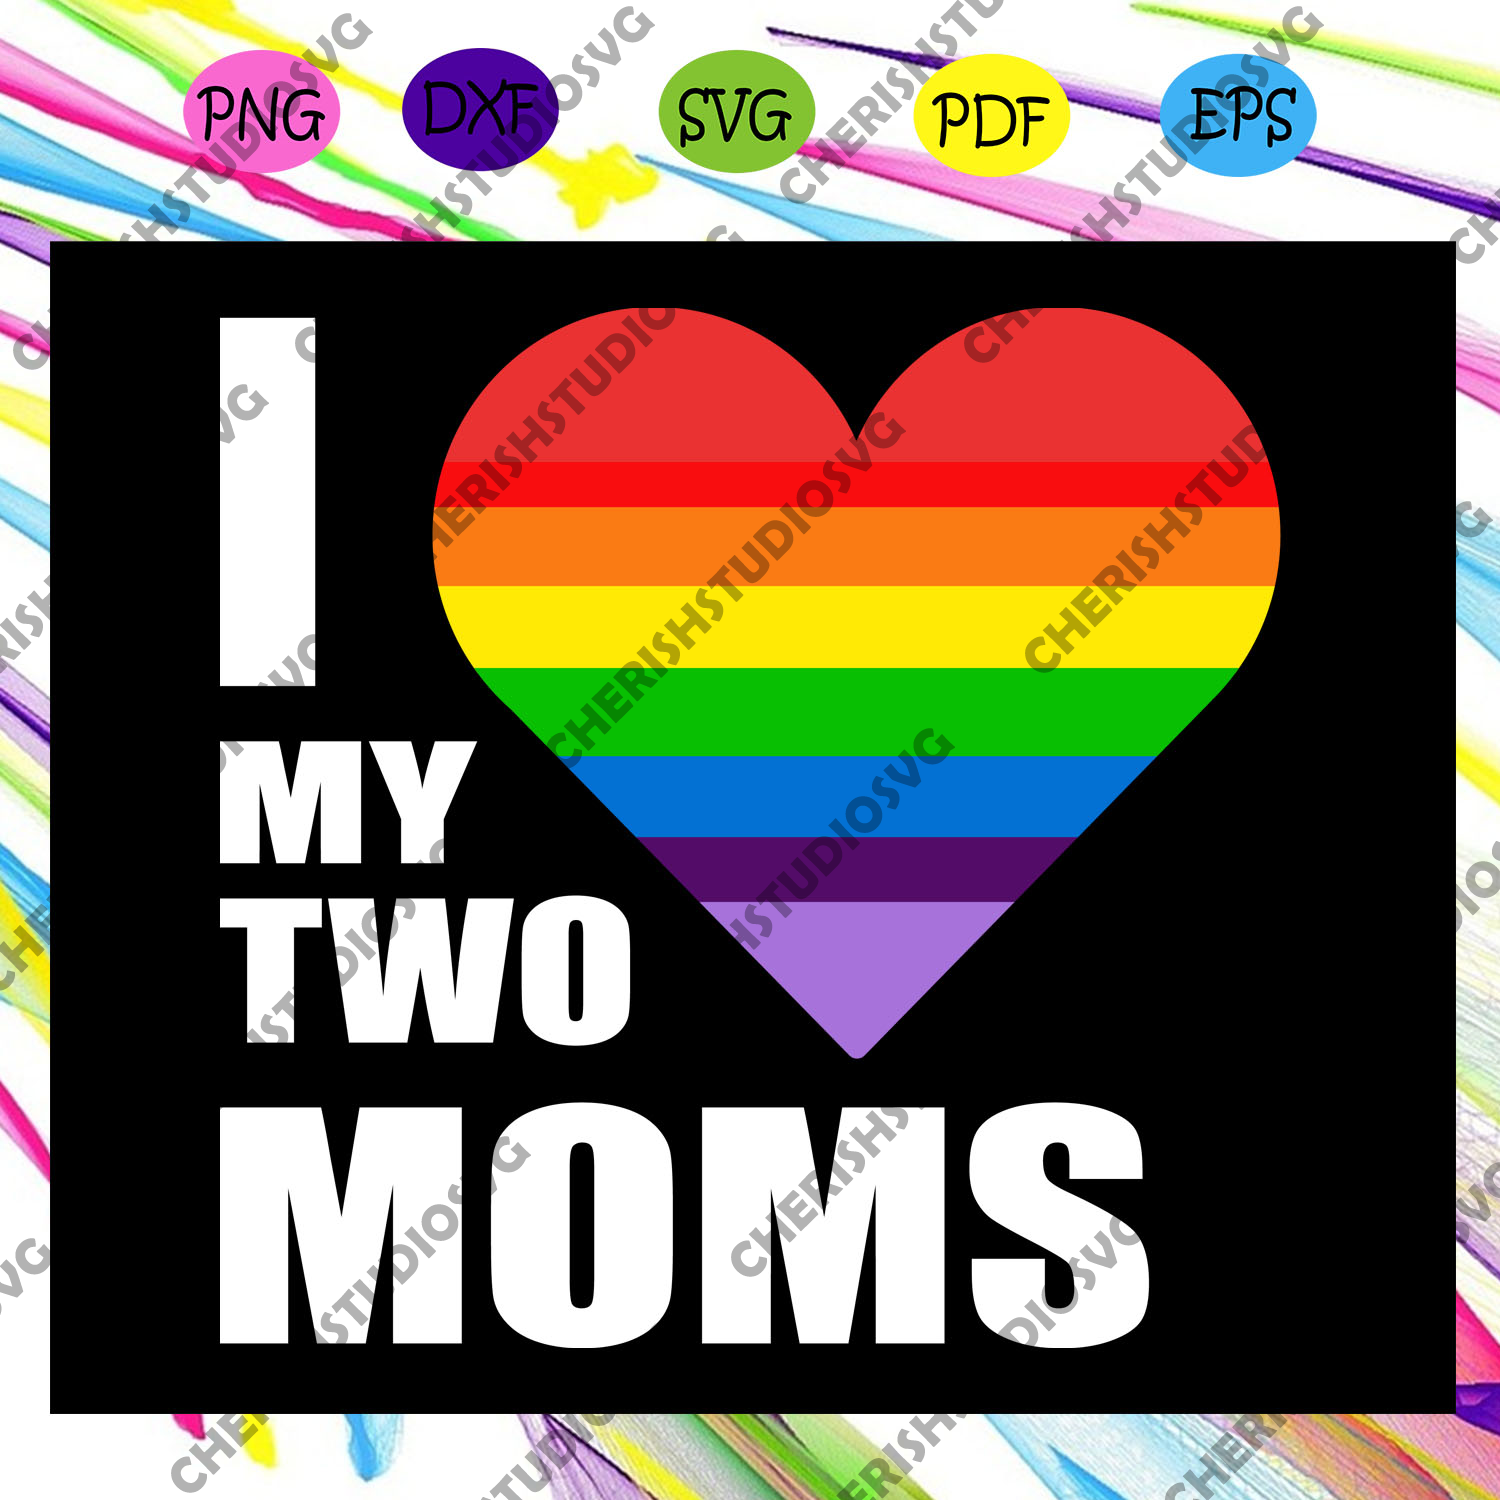 I love my two moms, rainbow svg,leseither way, lesbian gift,lgbt shirt, lgbt pride,gay pride svg, lesbian gifts,gift for bian love ,lgbt svg,Files For Silhouette, Files For Cricut, SVG, DXF, EPS, PNG, Instant Download